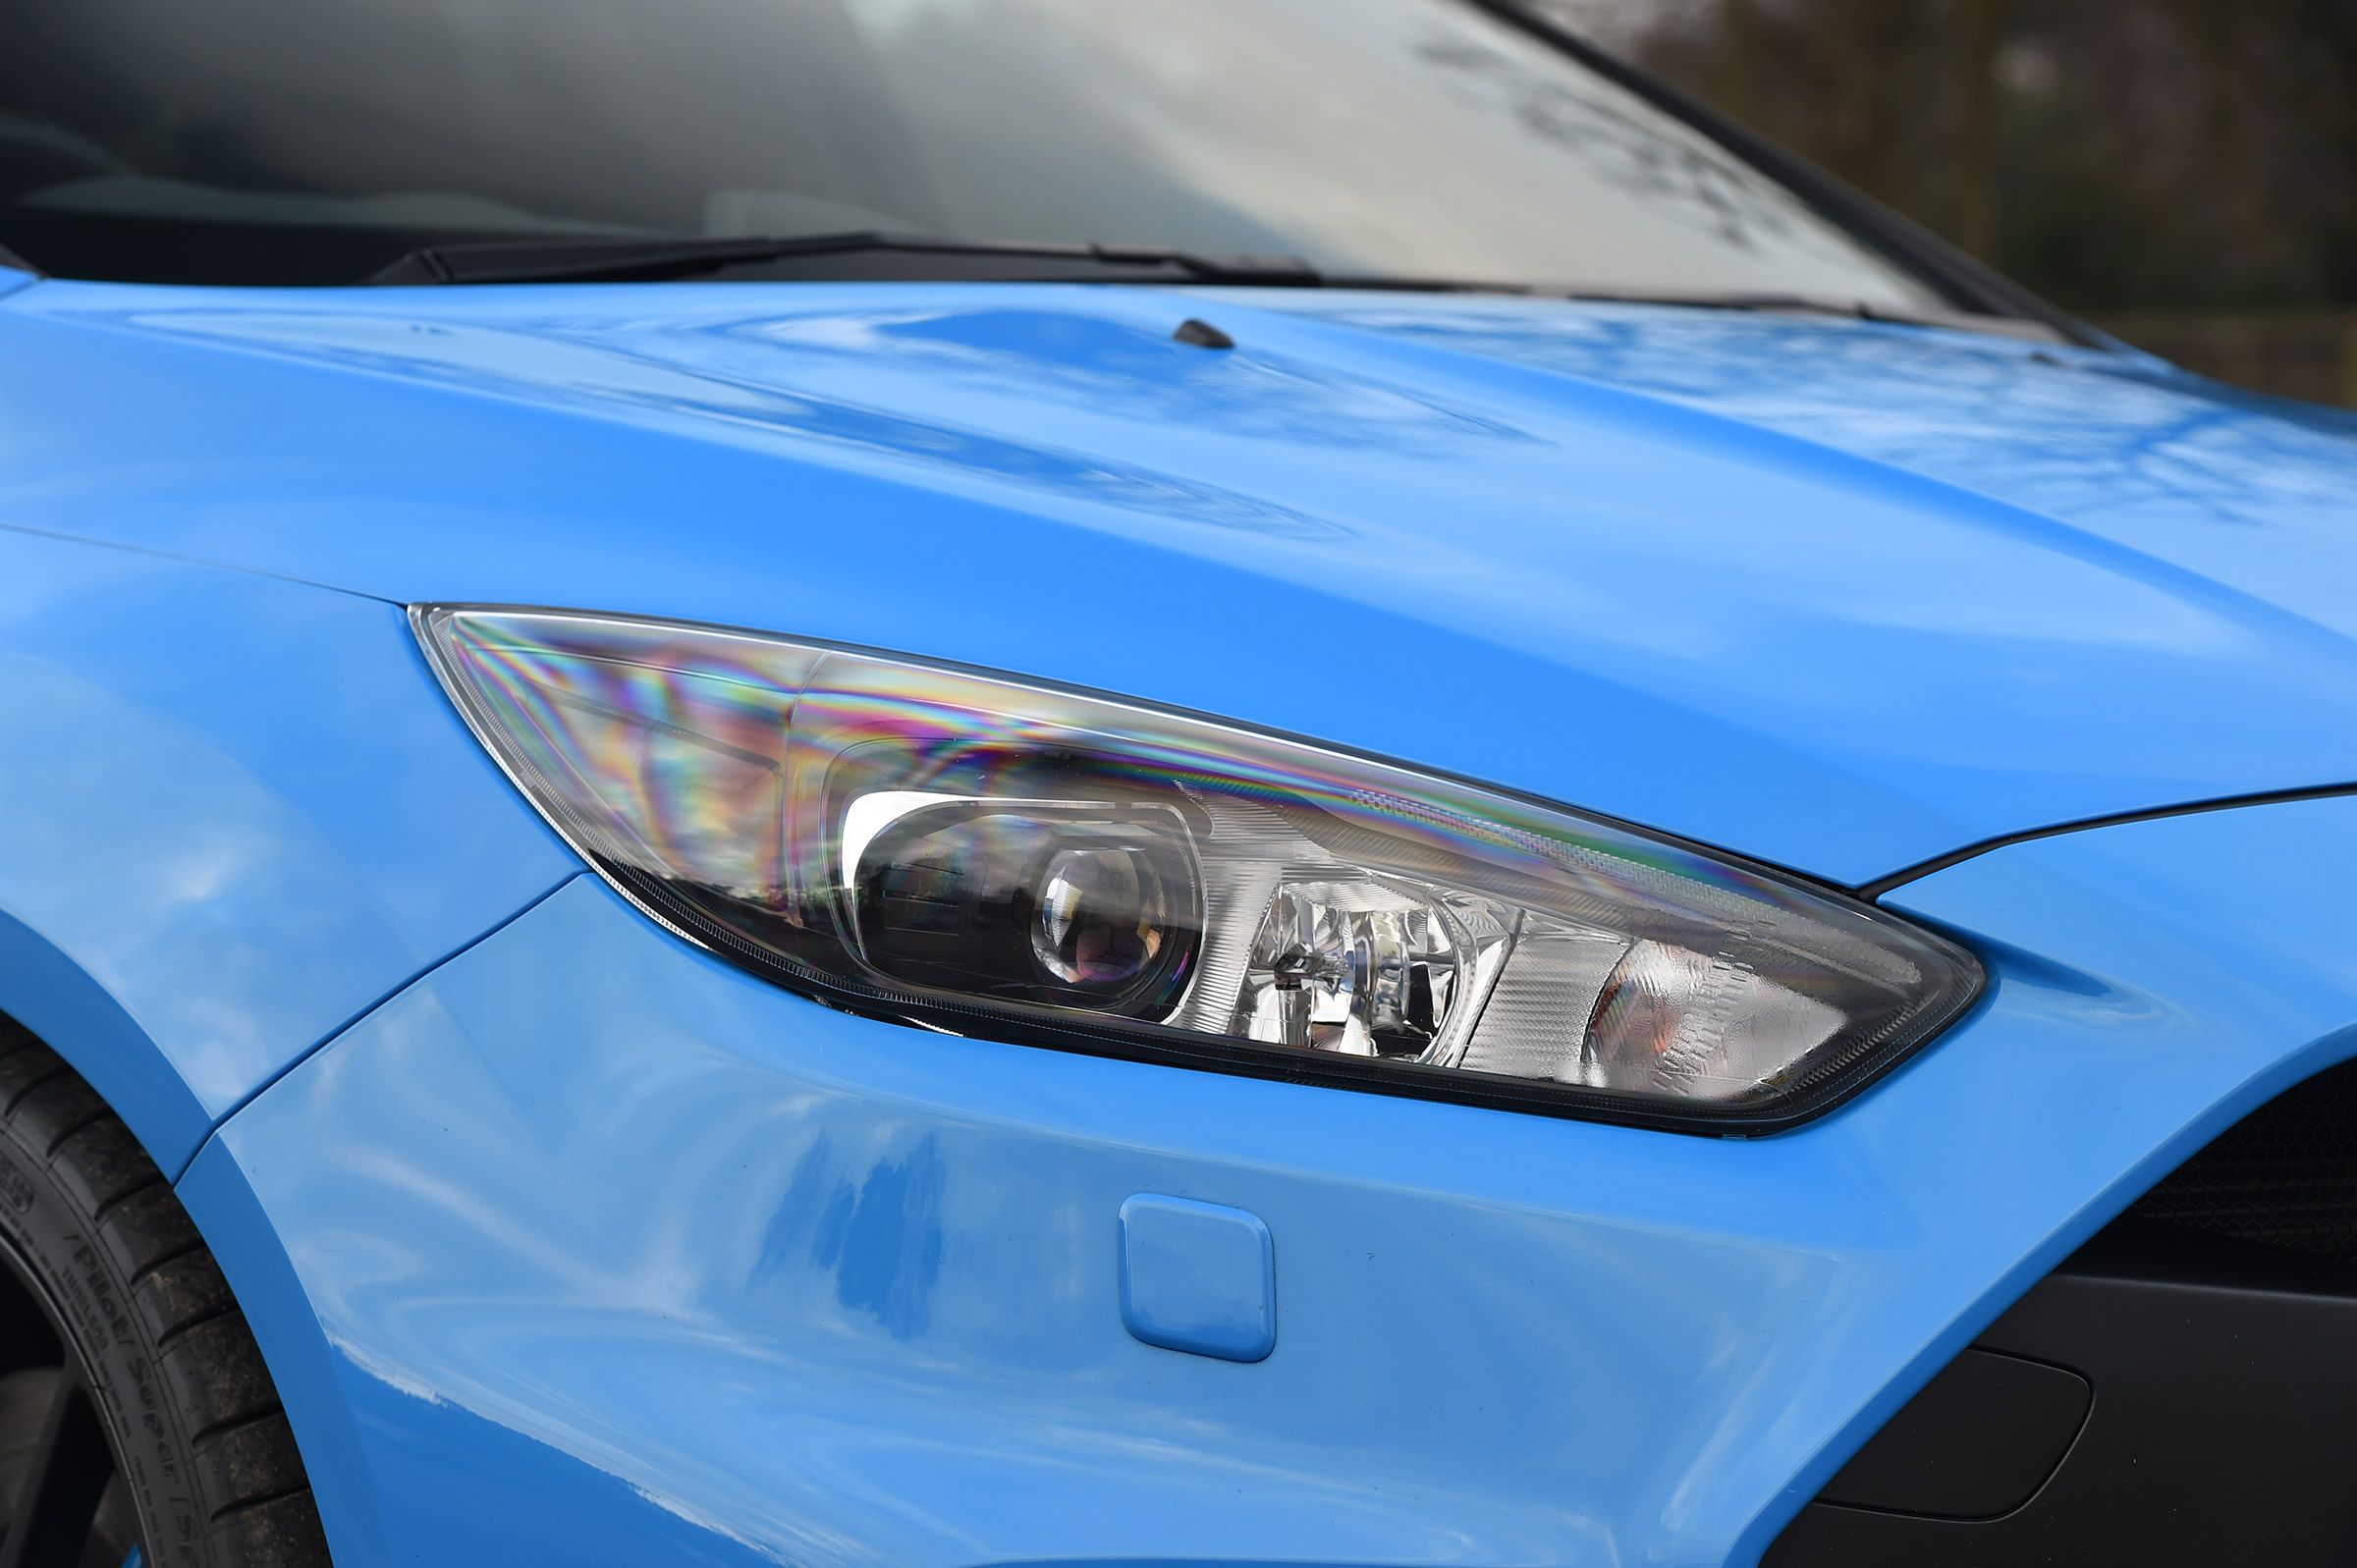 2017 Ford Focus RS Exterior View Headlight (View 4 of 23)